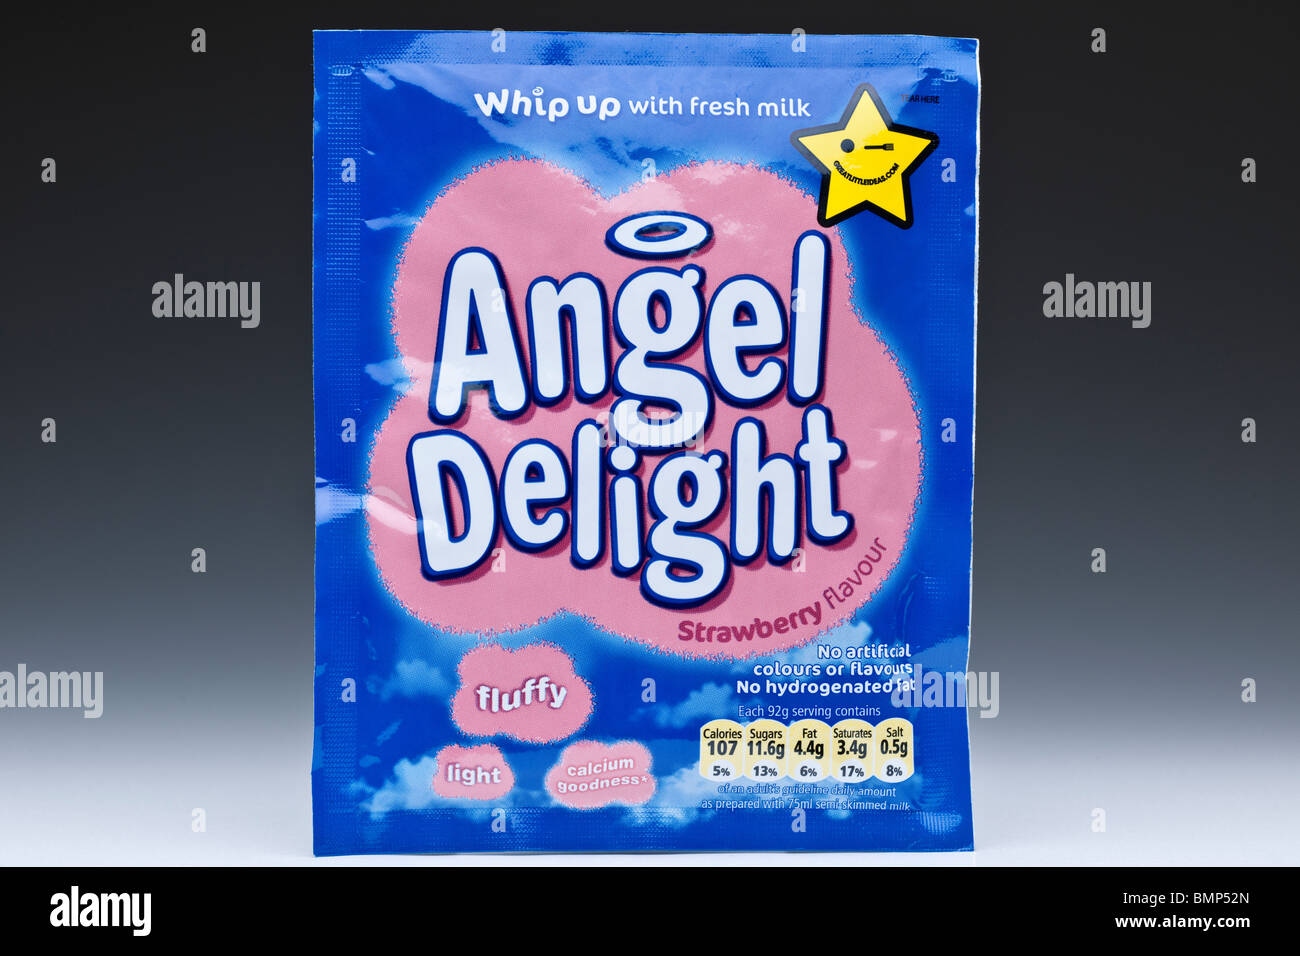 Packet of Strawberry flavour Angel delight - Stock Image